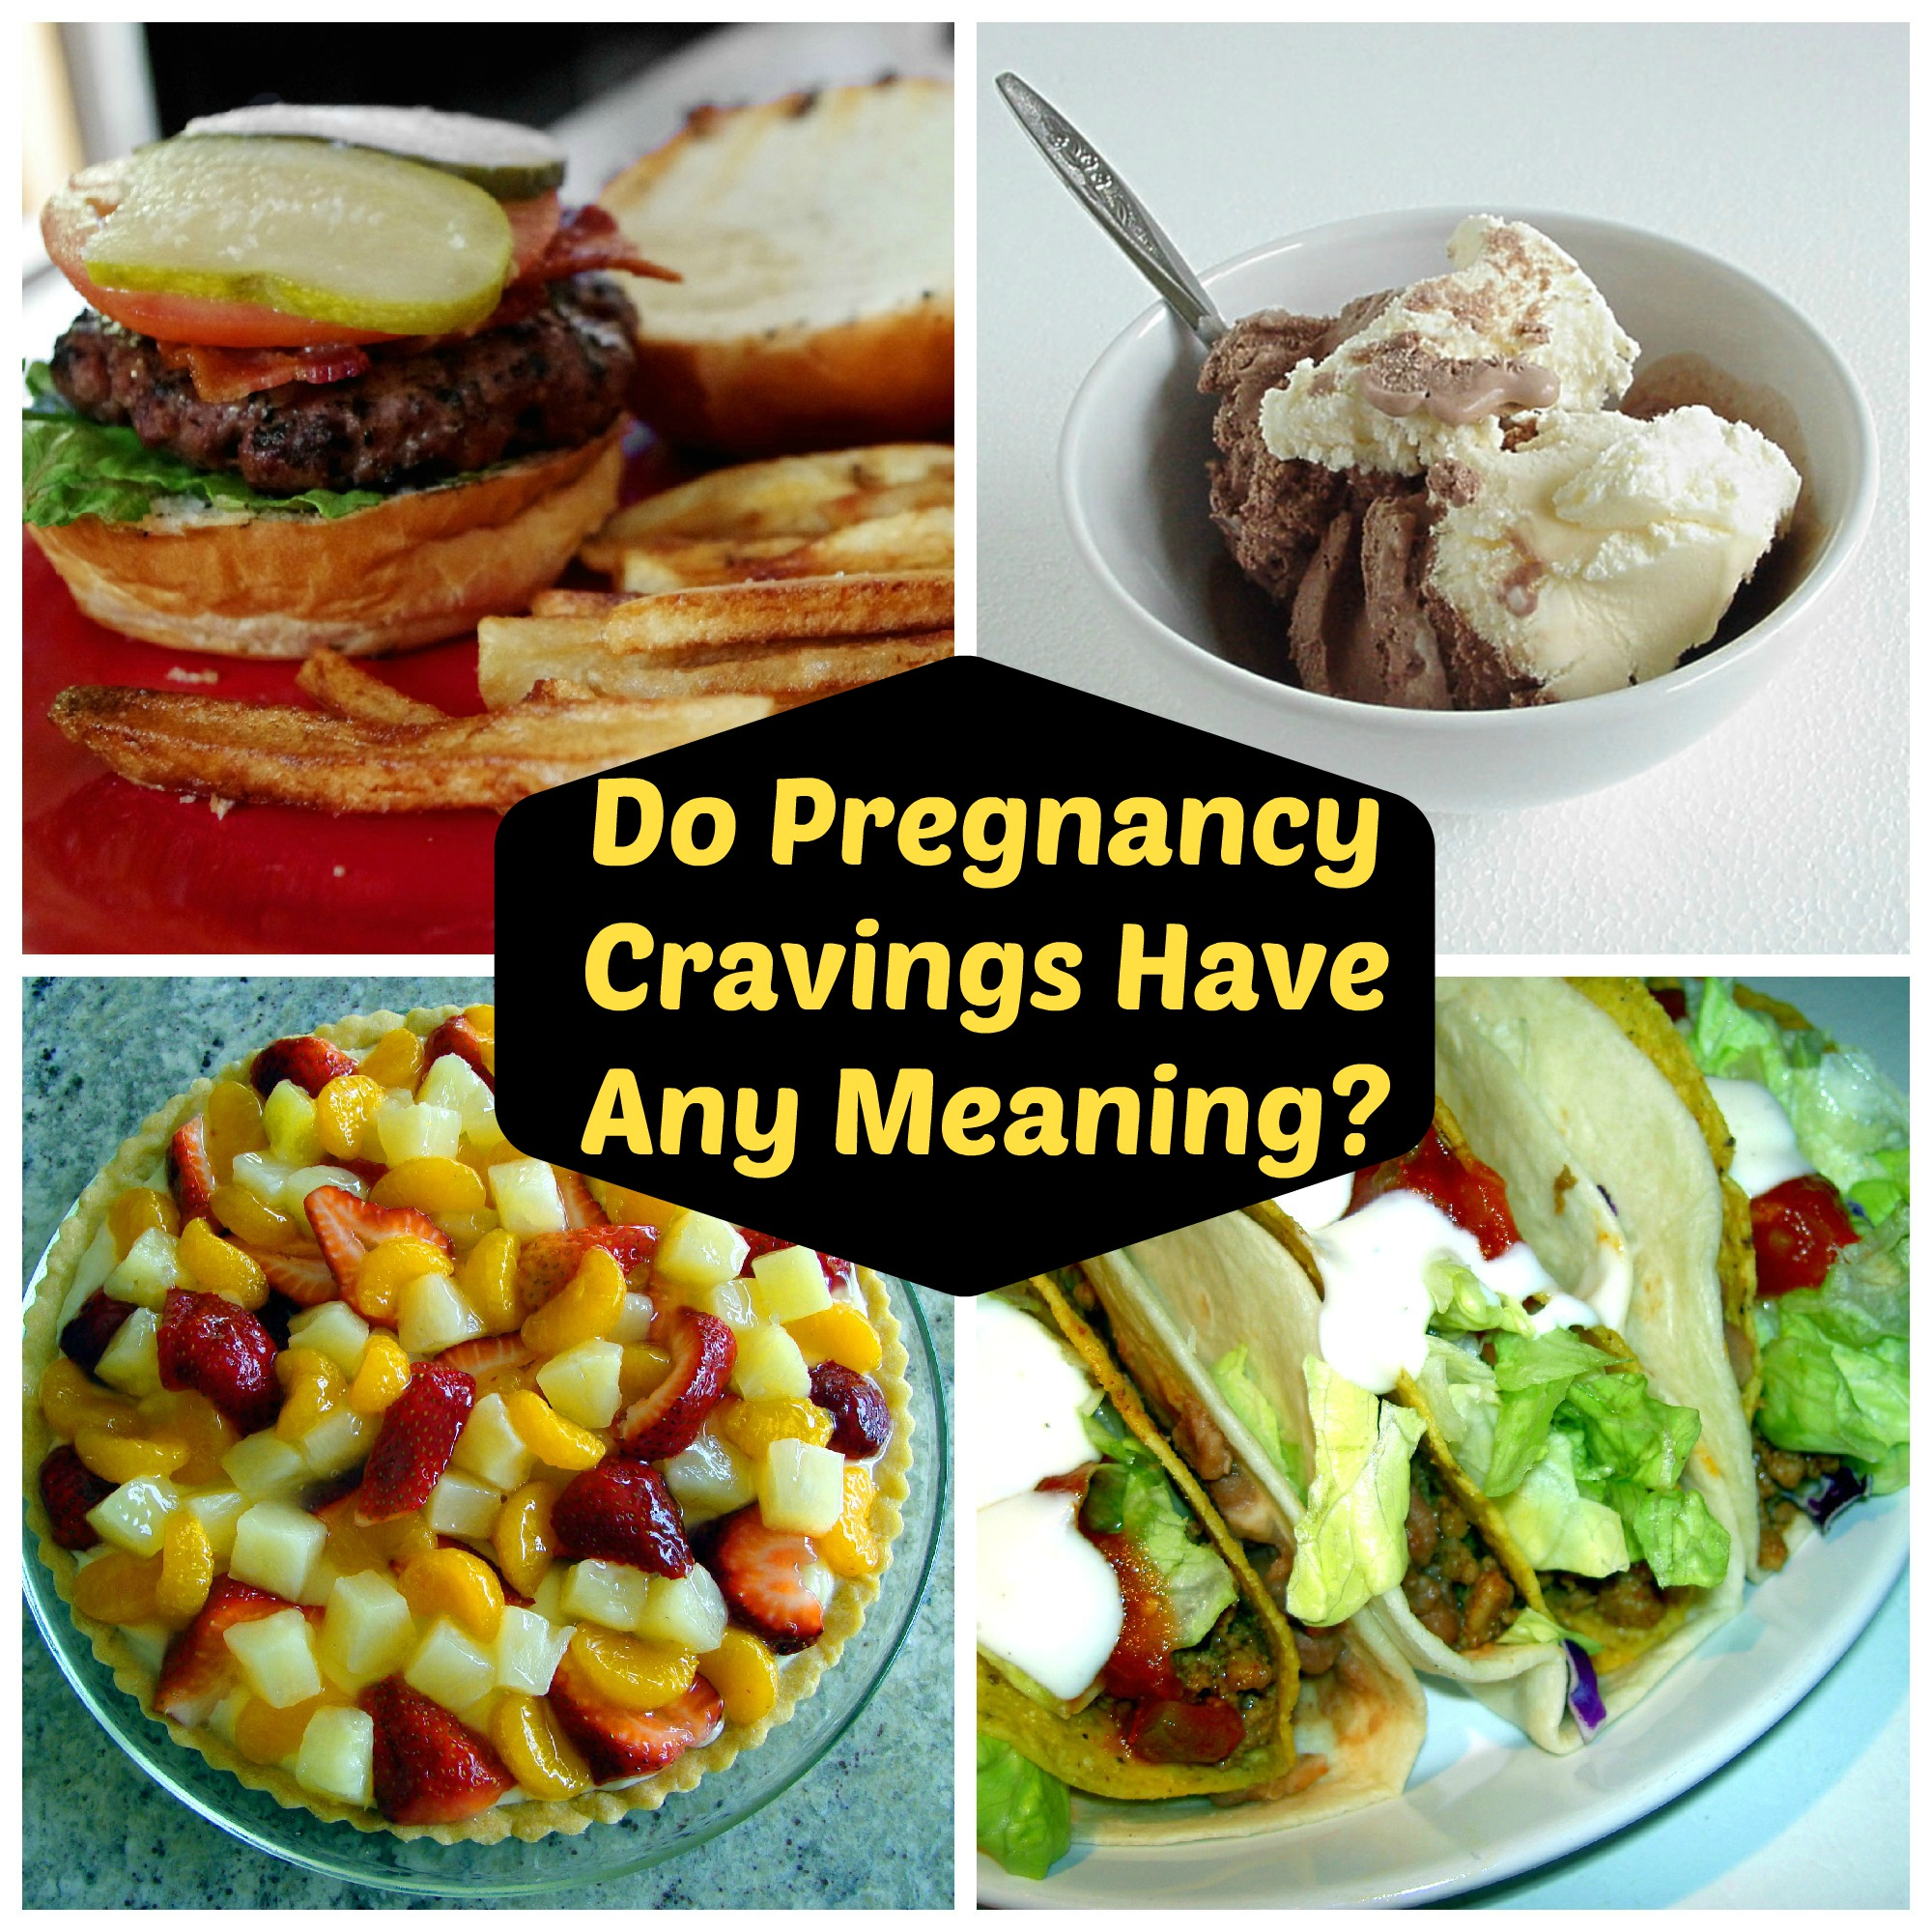 Do pregnancy cravingshave any meaning